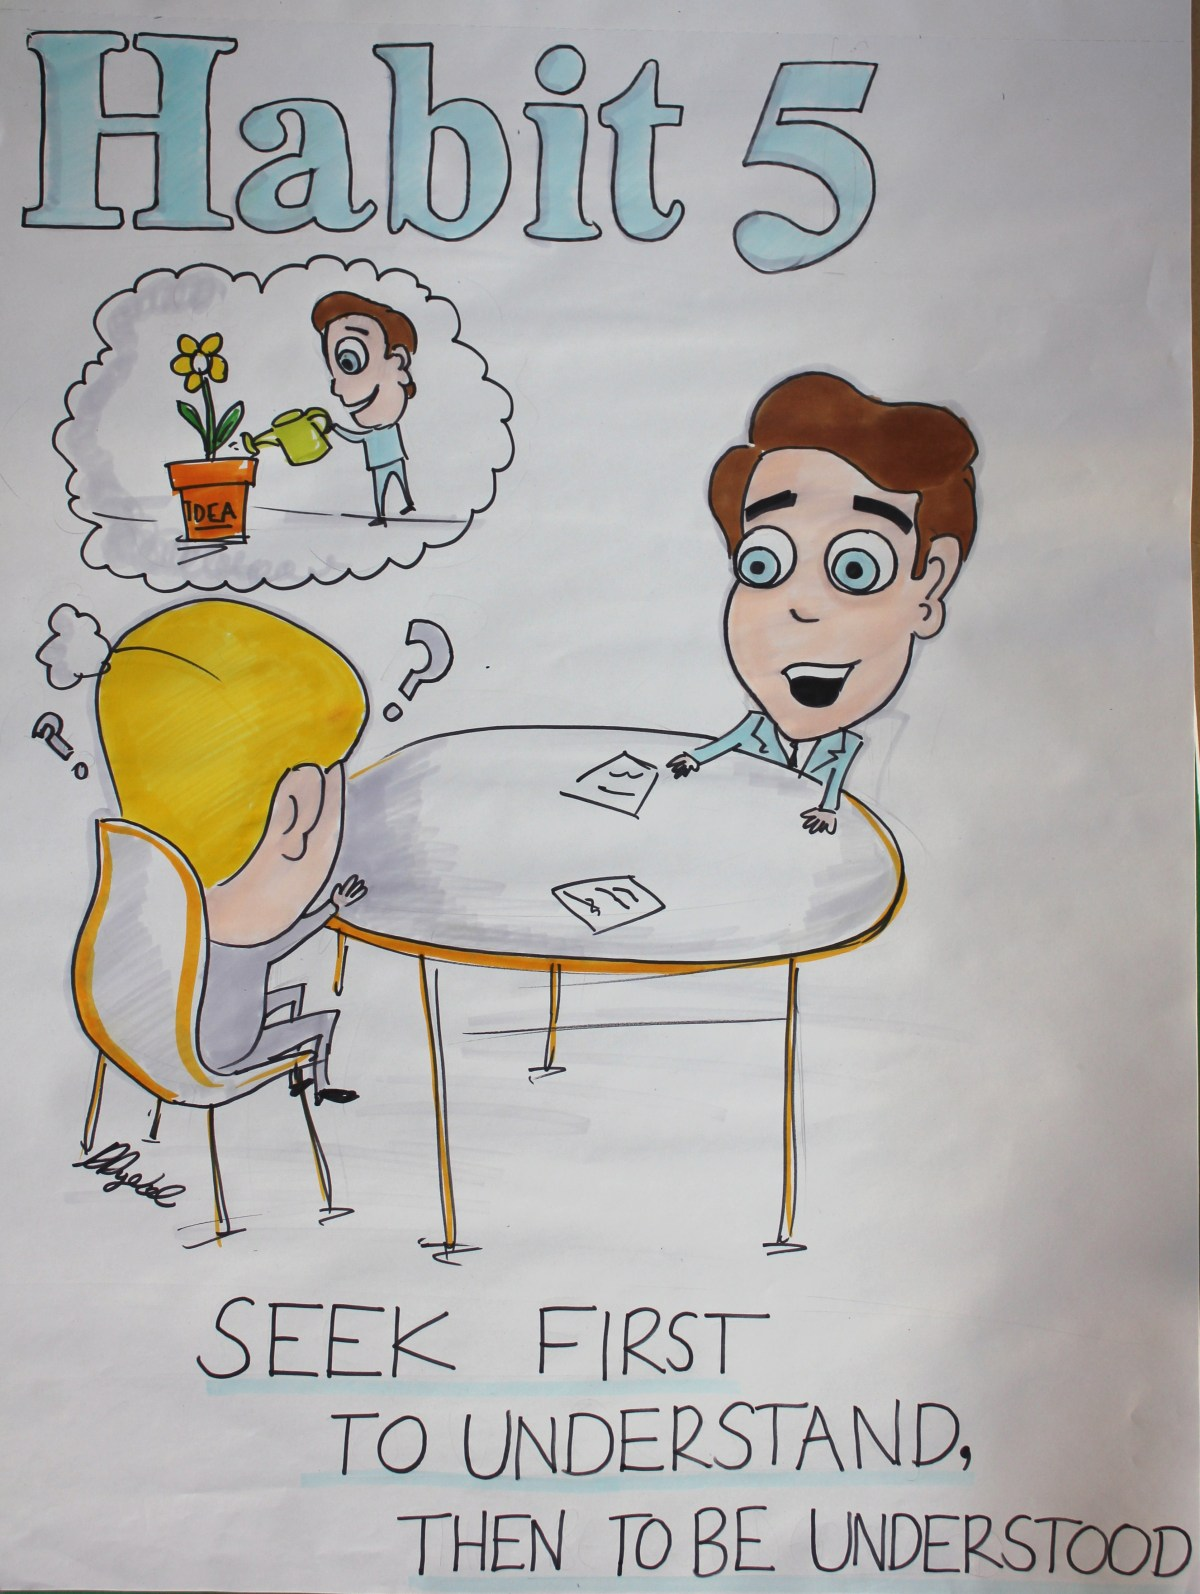 HABIT 5. Seek First To Understand, Then To Be Understood